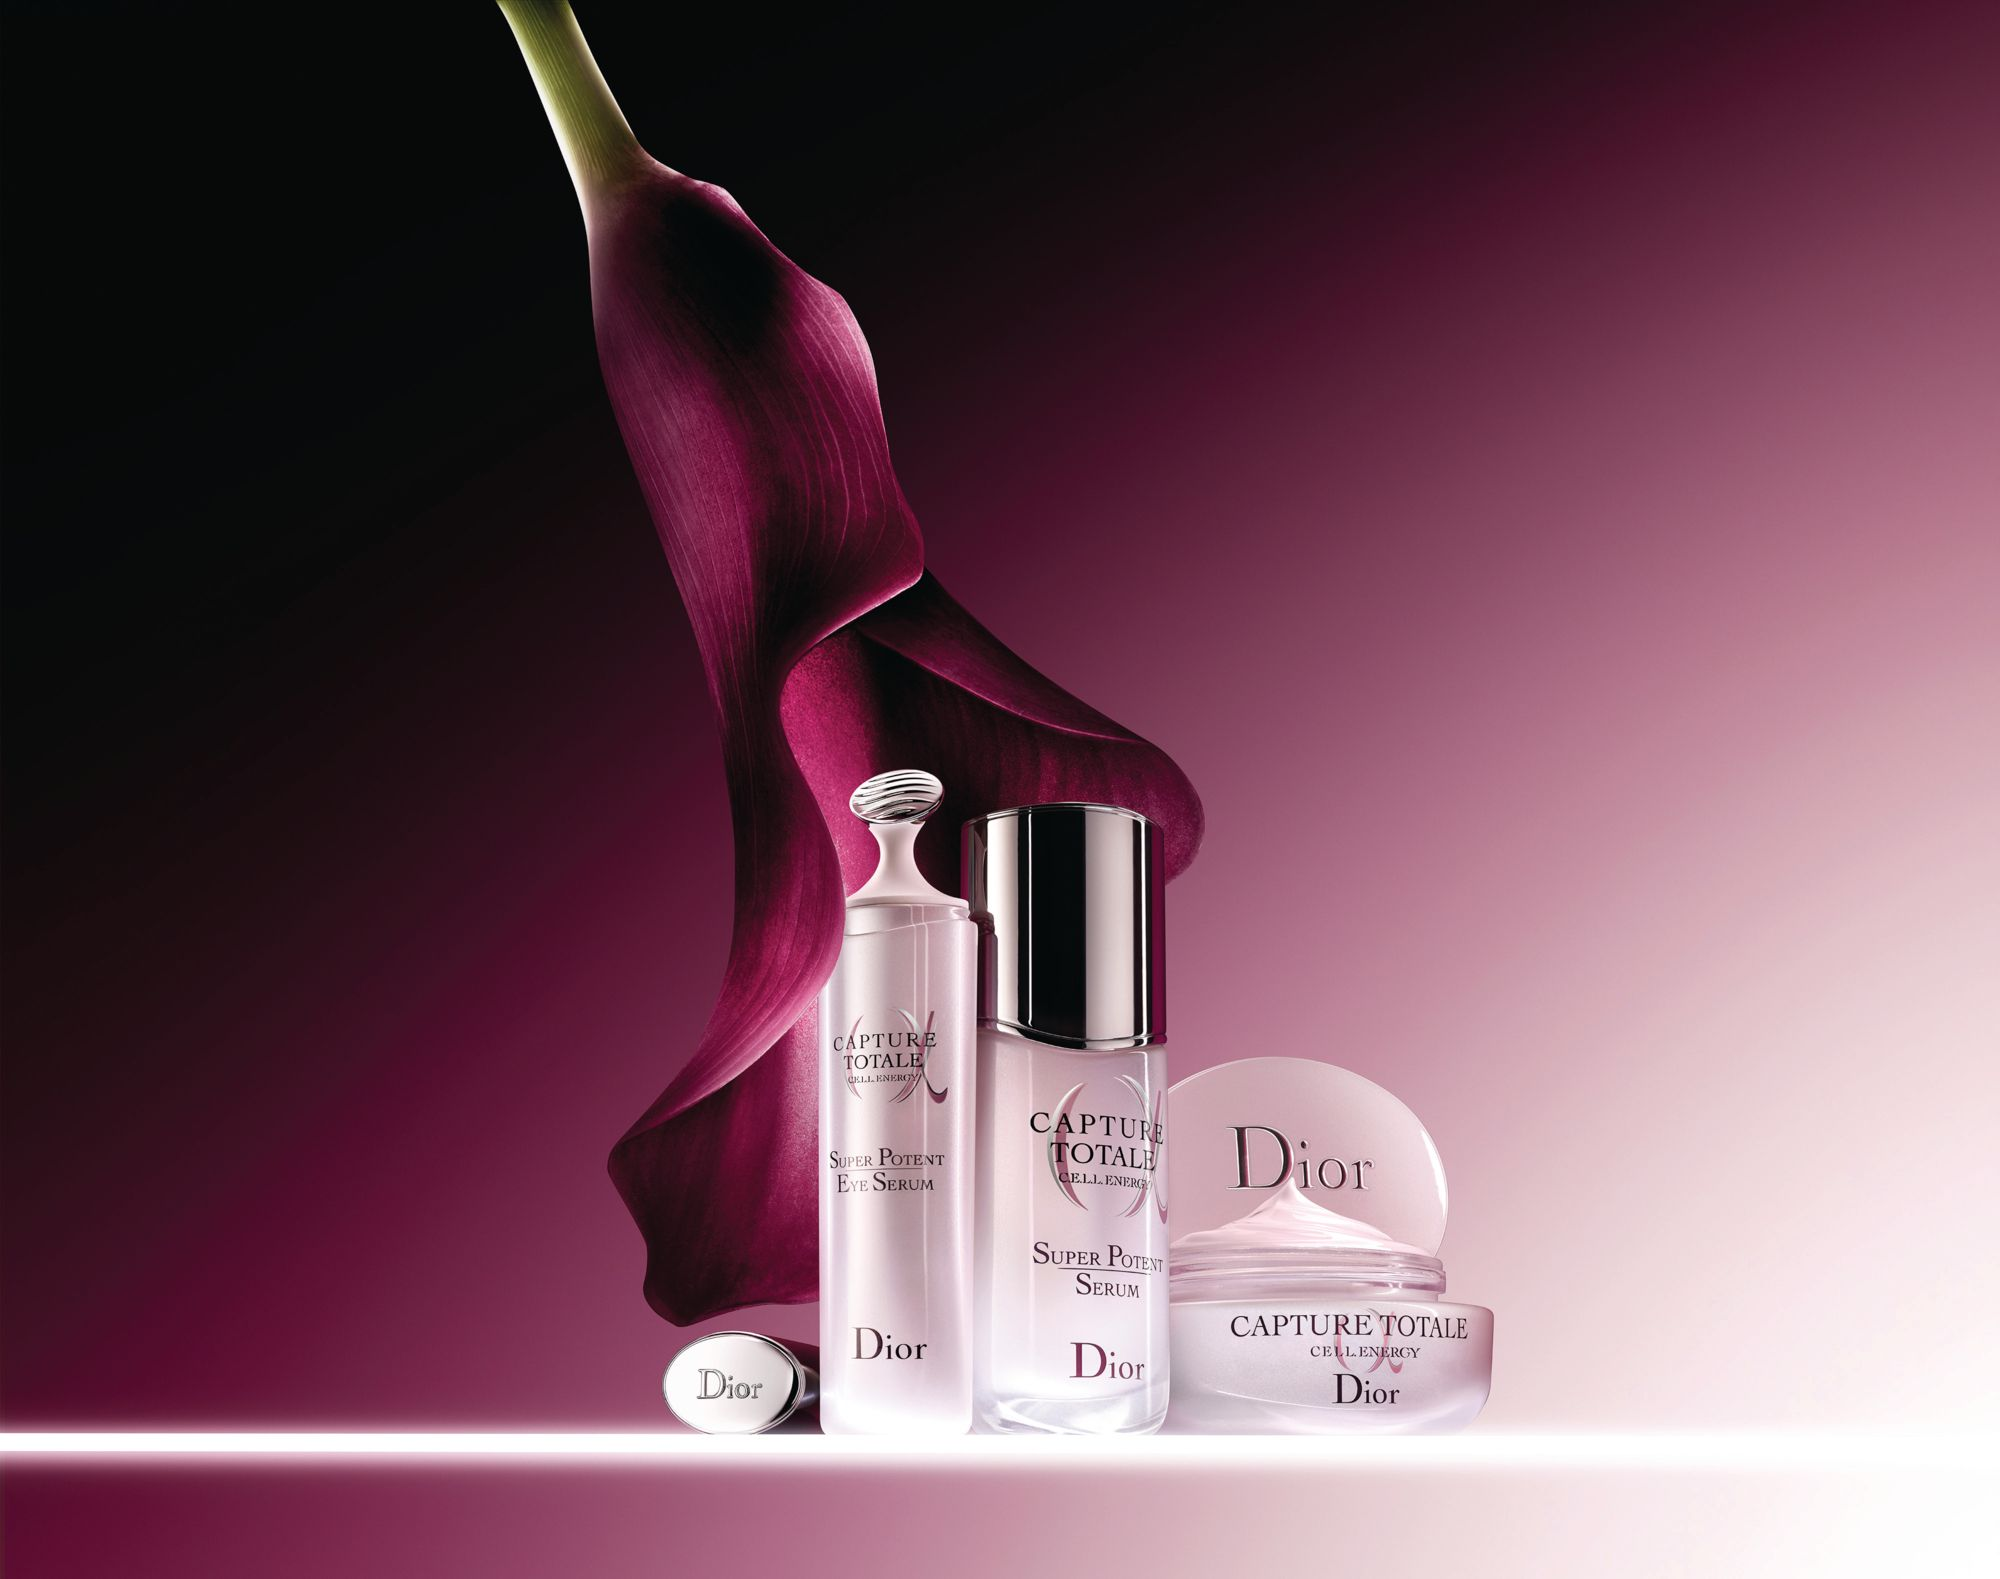 The Dior Capture Totale Eye Serum Brings Out The Beauty Of Our Most Expressive Feature